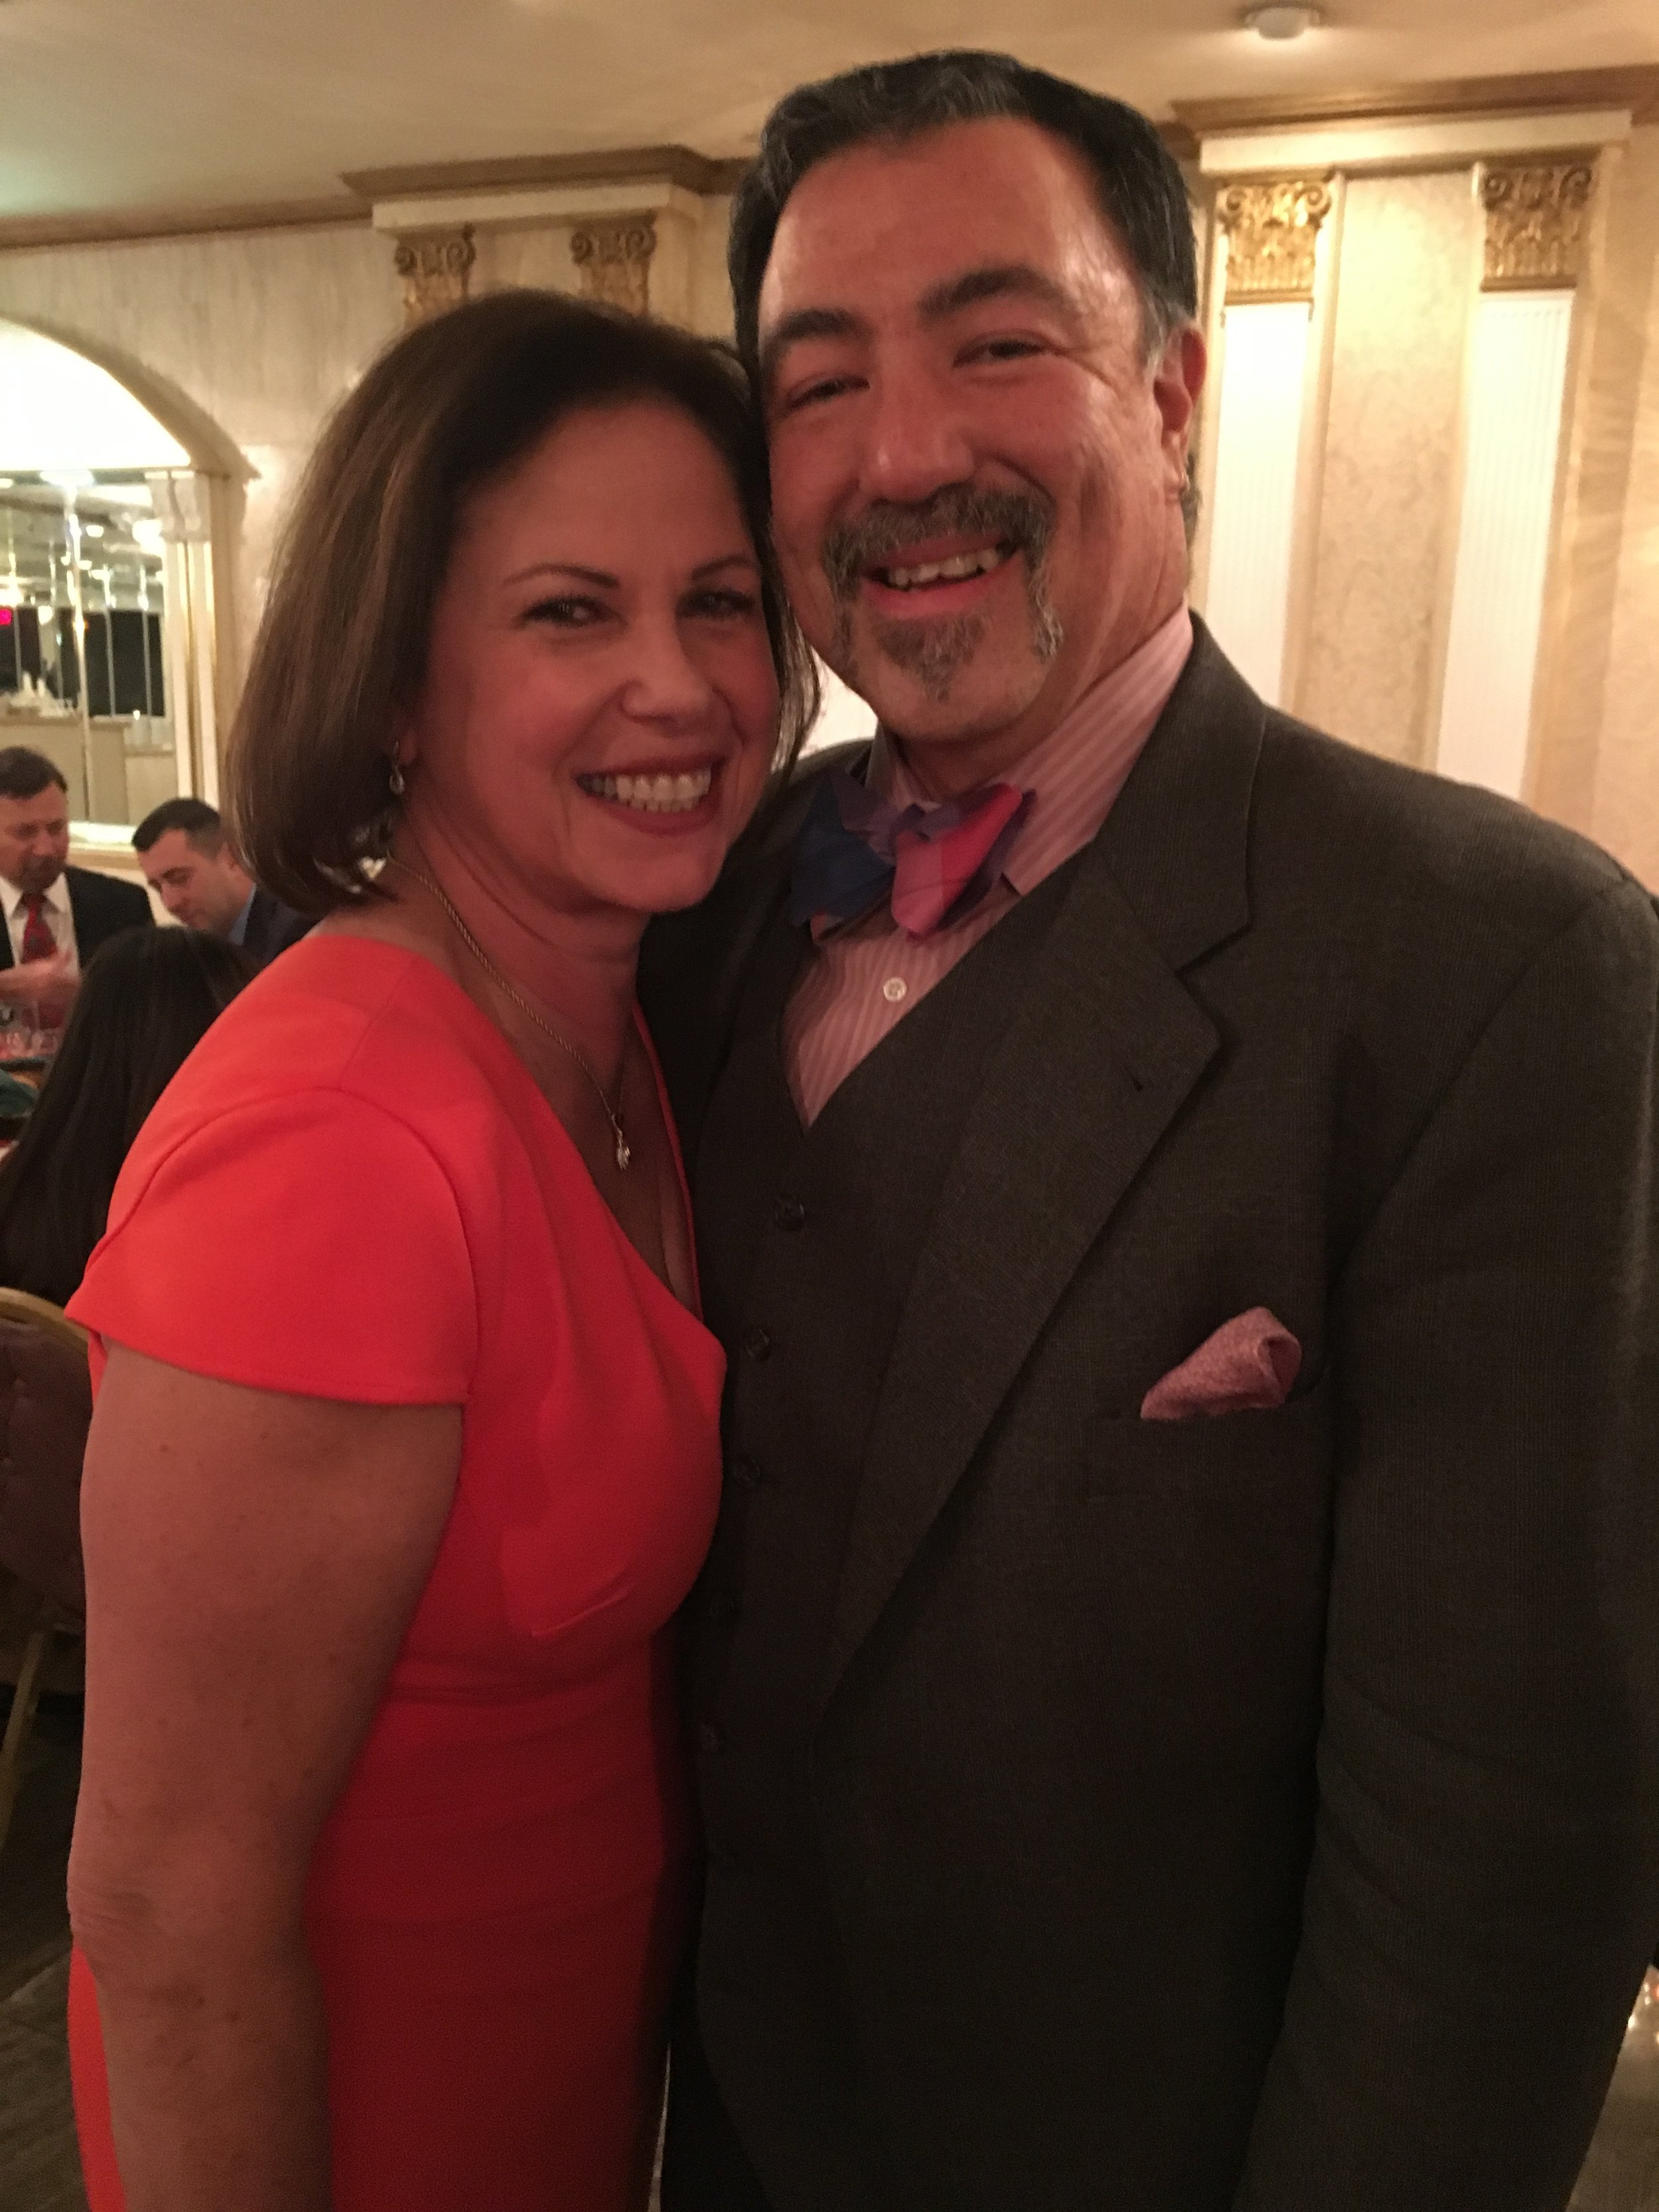 Attorney Wyatt Gibbons, a candidate for the Civil Court bench, and his wife Judge Bruna DiBiase who presides in AP6 in Queens Criminal Court. Photo courtesy of Wyatt Gibbons.